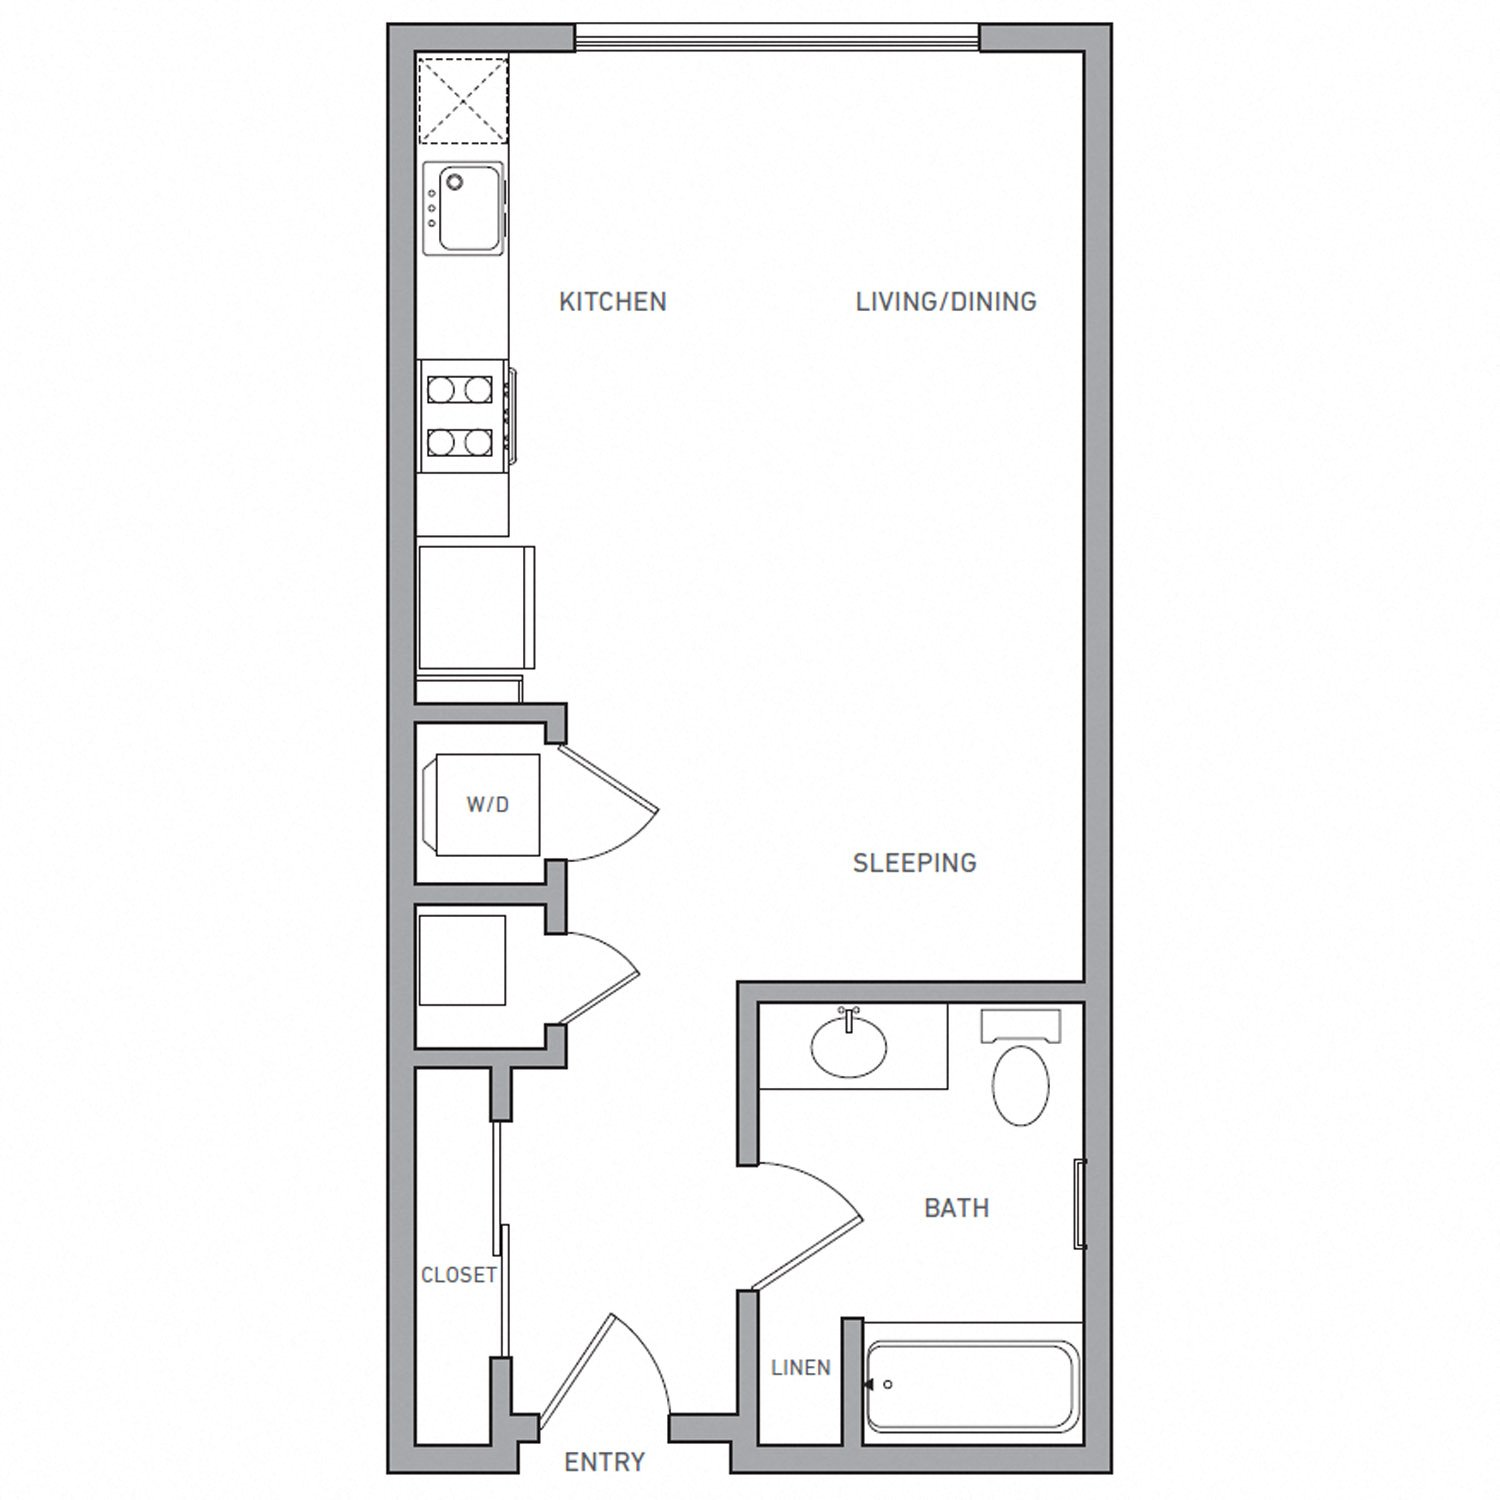 S One floor plan diagram. A studio apartment with one bathroom, an open kitchen and living area, and a washer dryer.